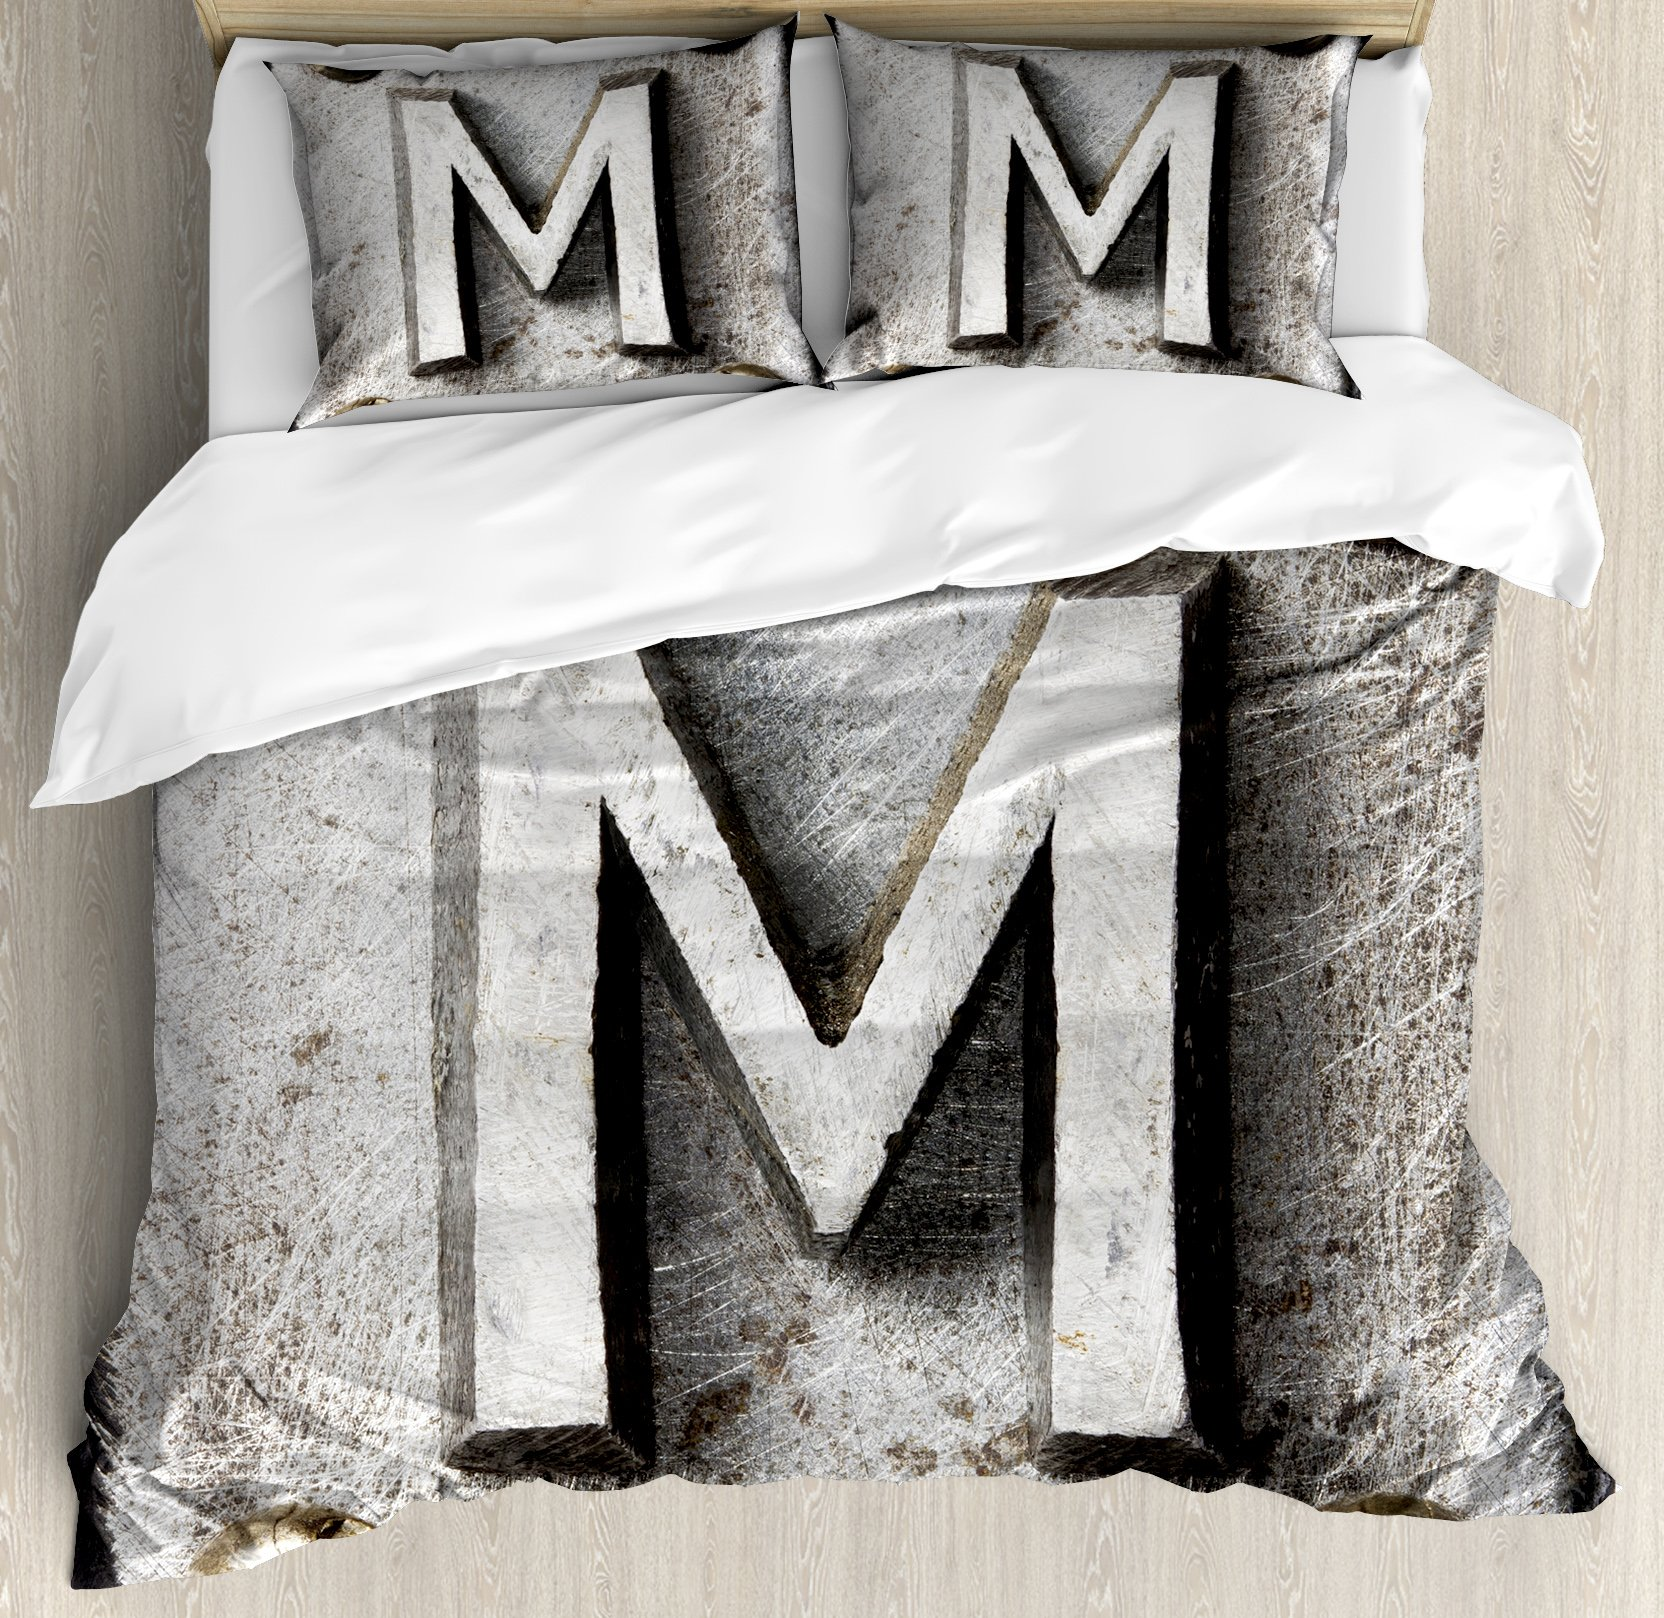 Letter M Duvet Cover Set Queen Size by Ambesonne, Zinc Iron Steel Alphabet Typeset with Grunge Scratched Texture Industrial Image, Decorative 3 Piece Bedding Set with 2 Pillow Shams, Silver Gold